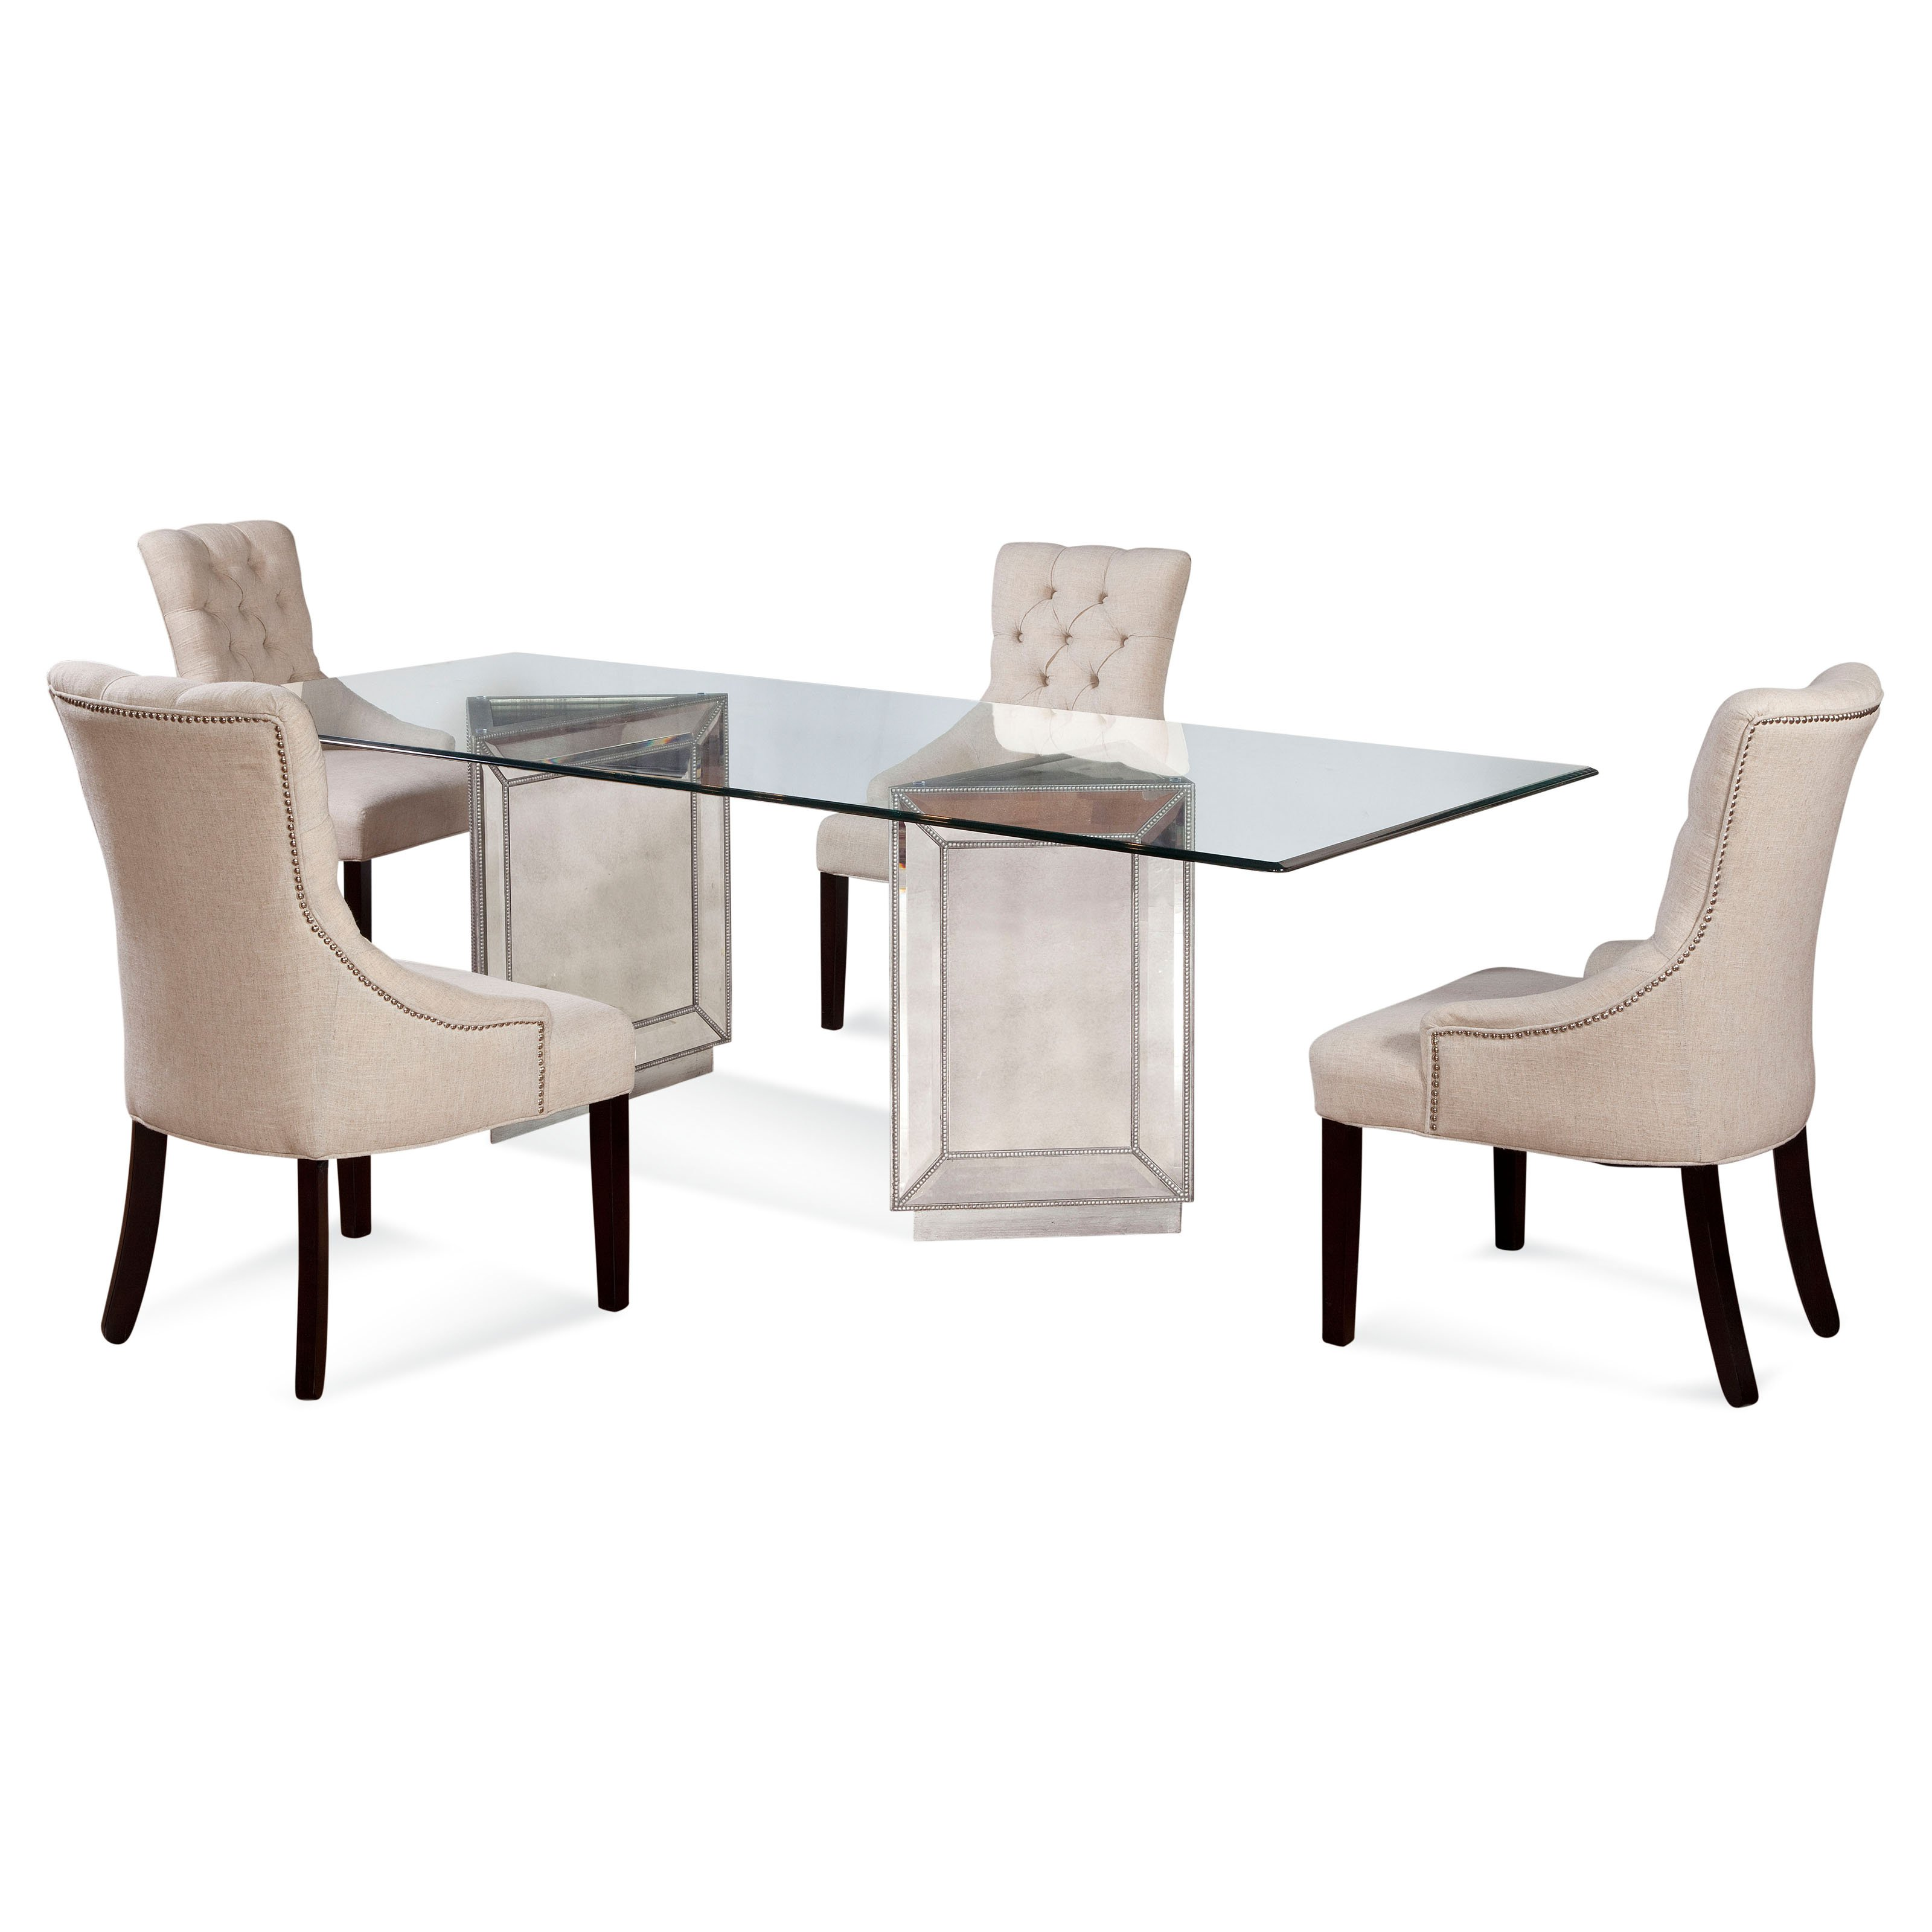 Bett Mirror 5 Piece Murano Dining Table Set With Fortnum Chairs